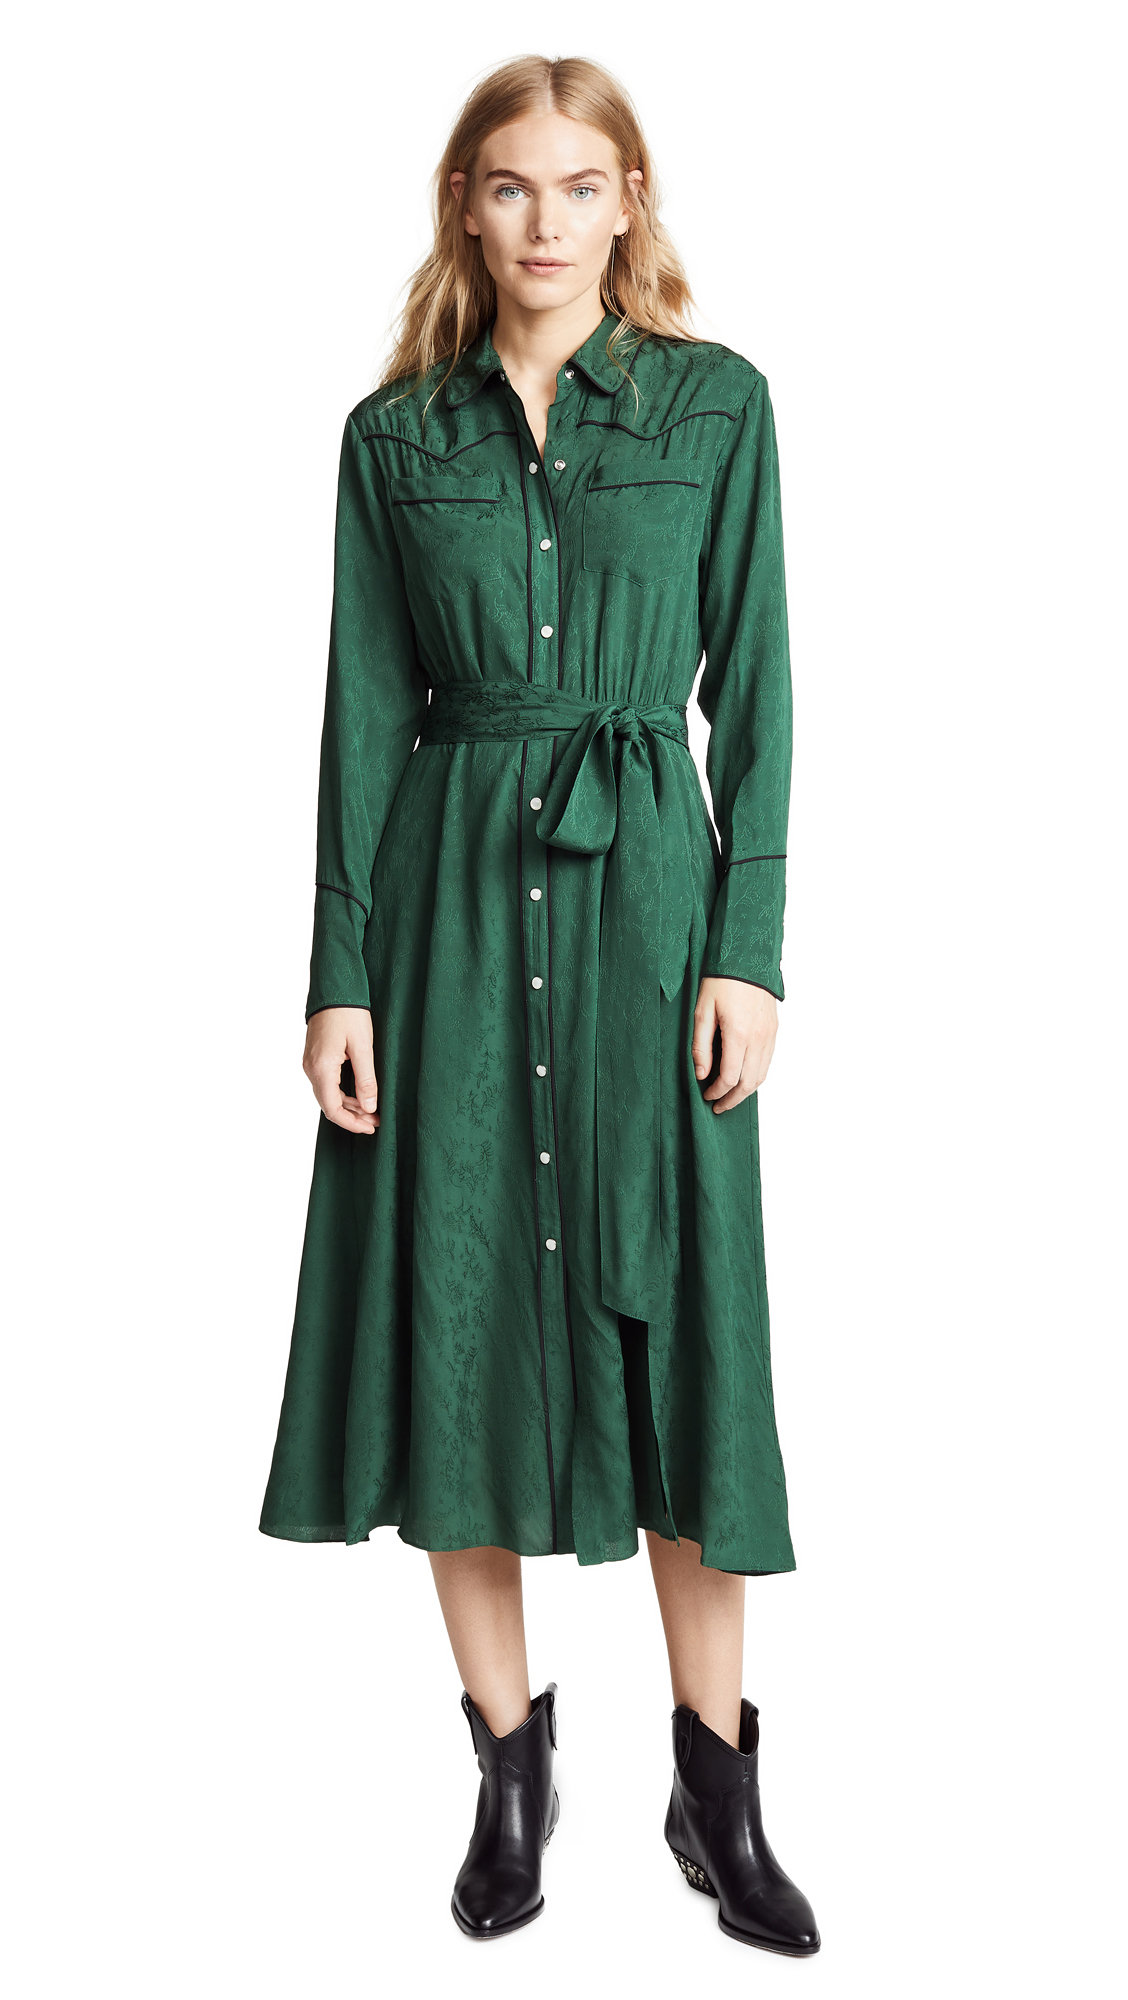 Veronica Beard Spur Dress In Green